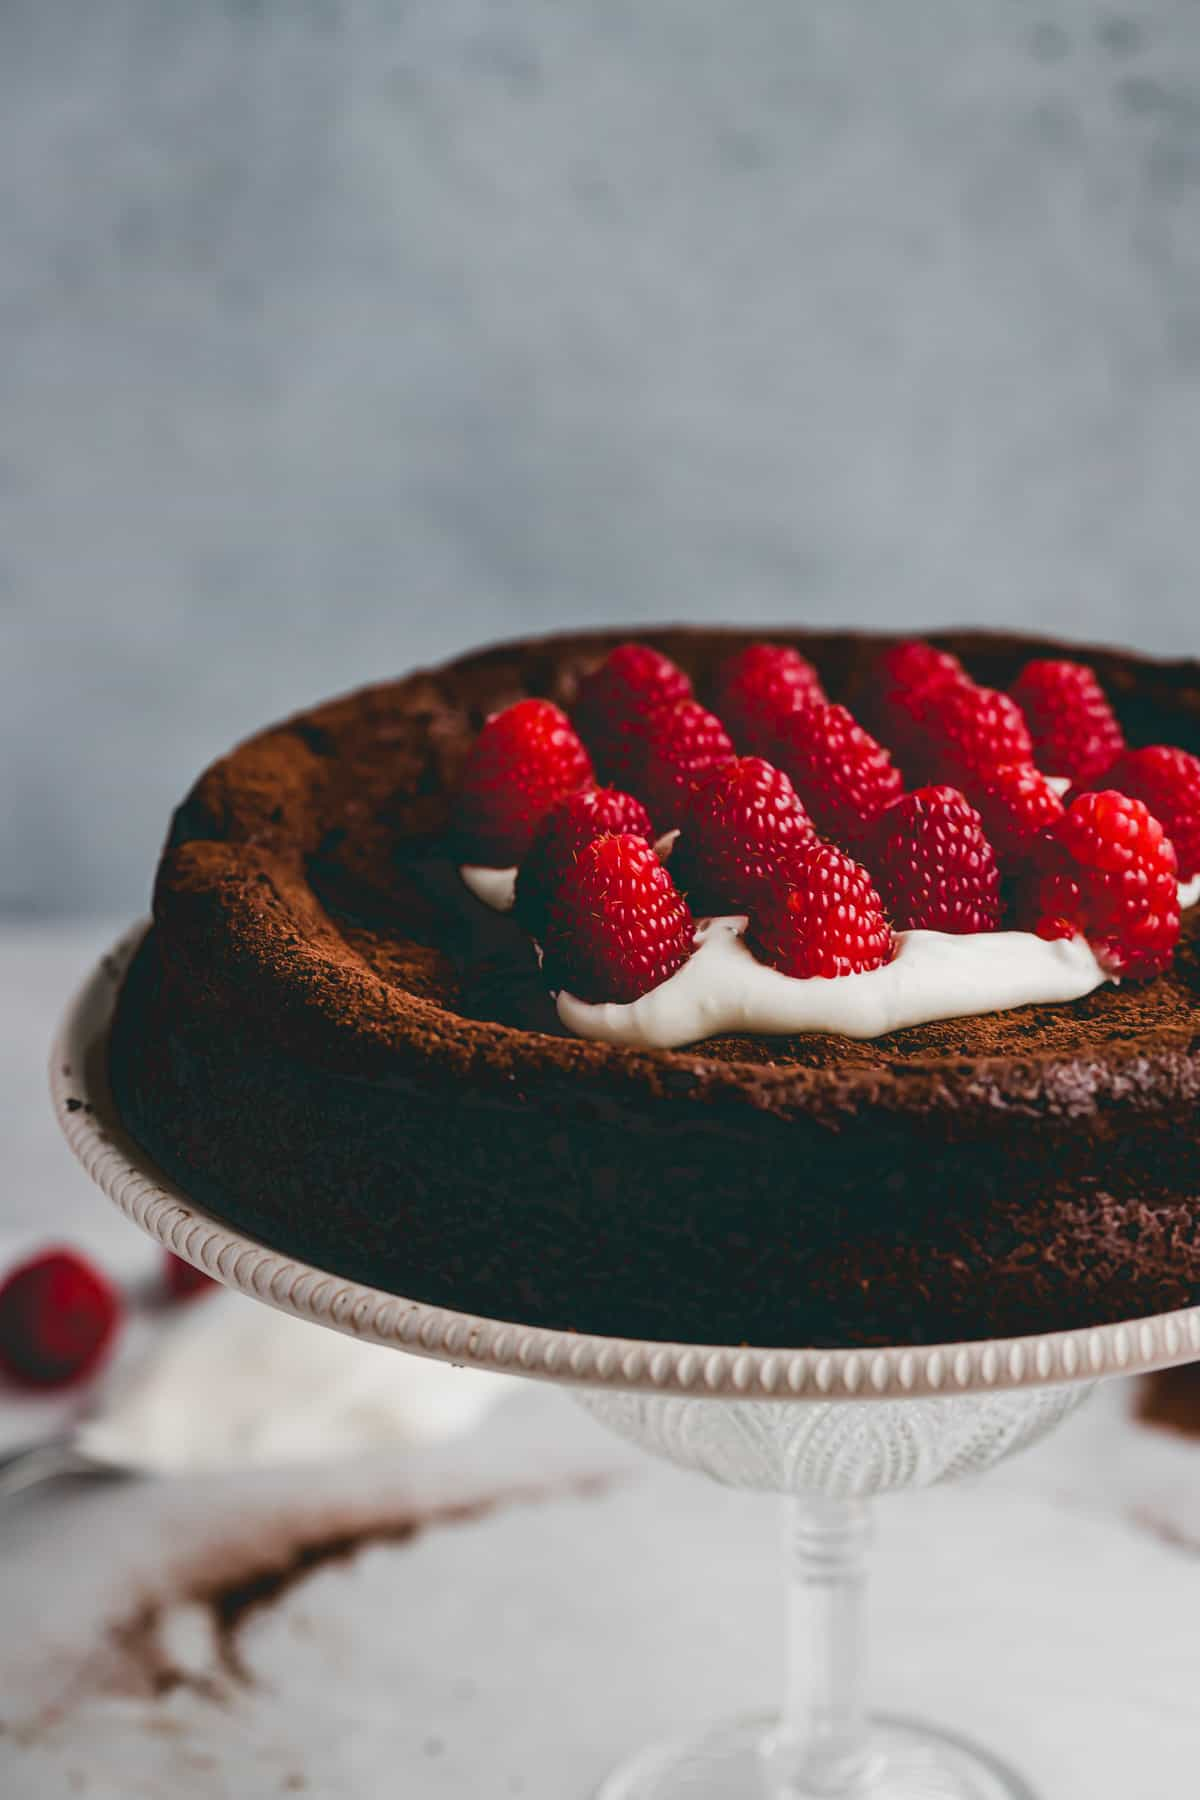 dairy-free flourless chocolate cake on a cake stand